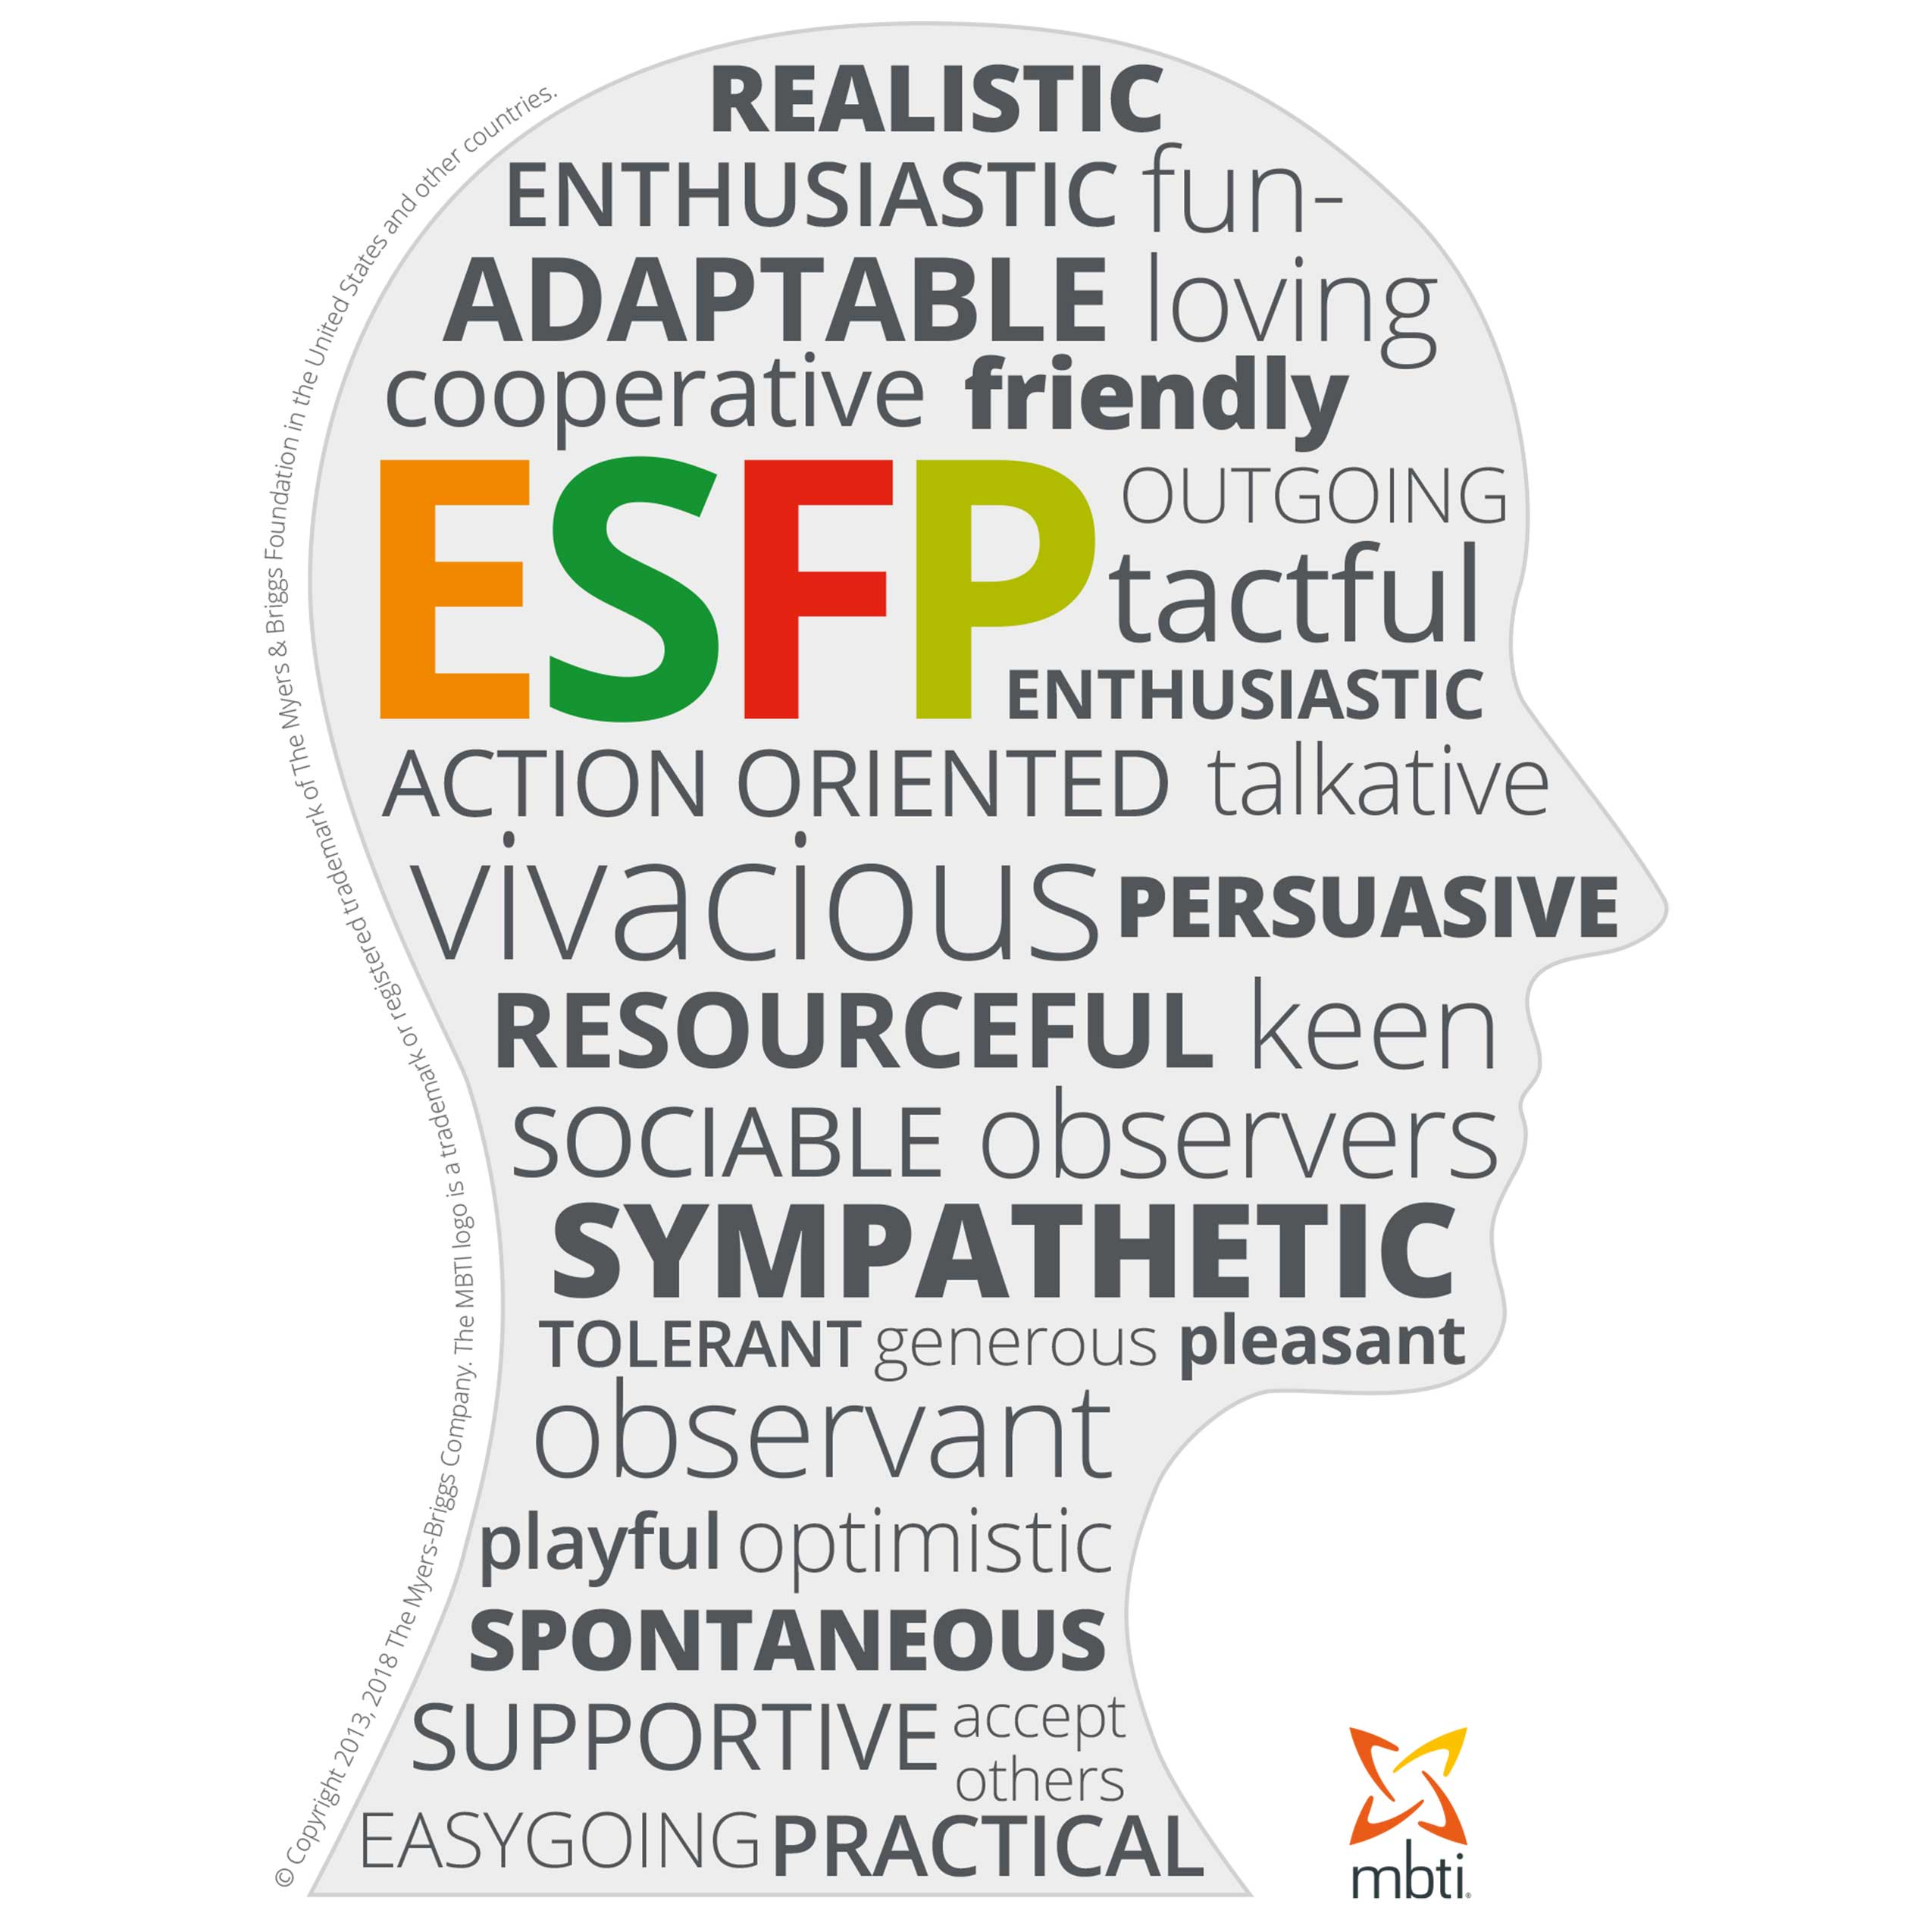 Typical characteristics of an ESFP